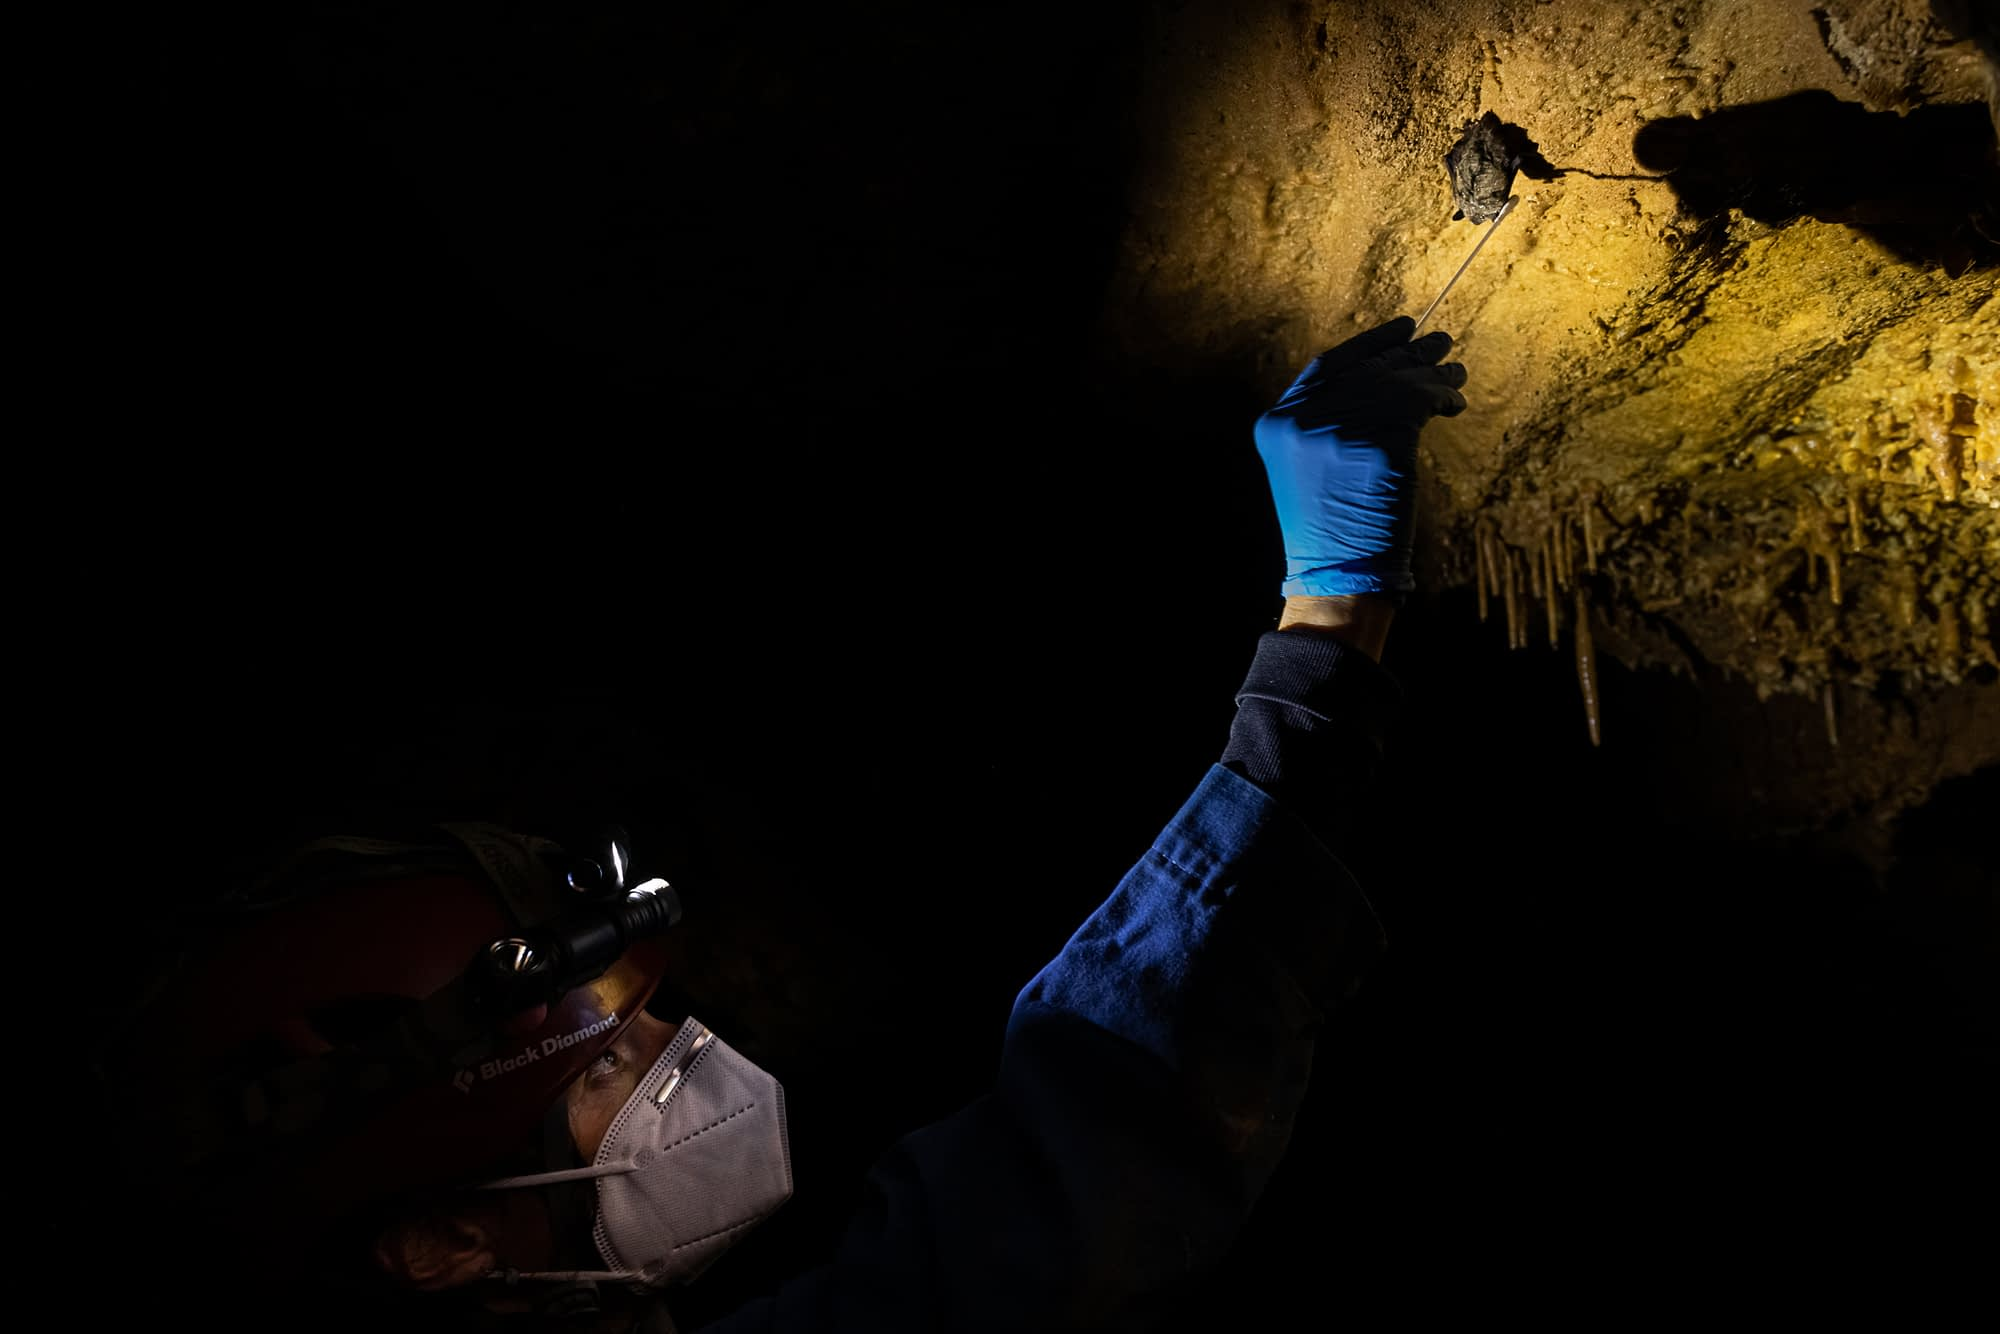 White-Nose Syndrome with Lauri Hanauska-Brown and Tears of the Turtle with Ian Chechet - 2 New Podcasts!